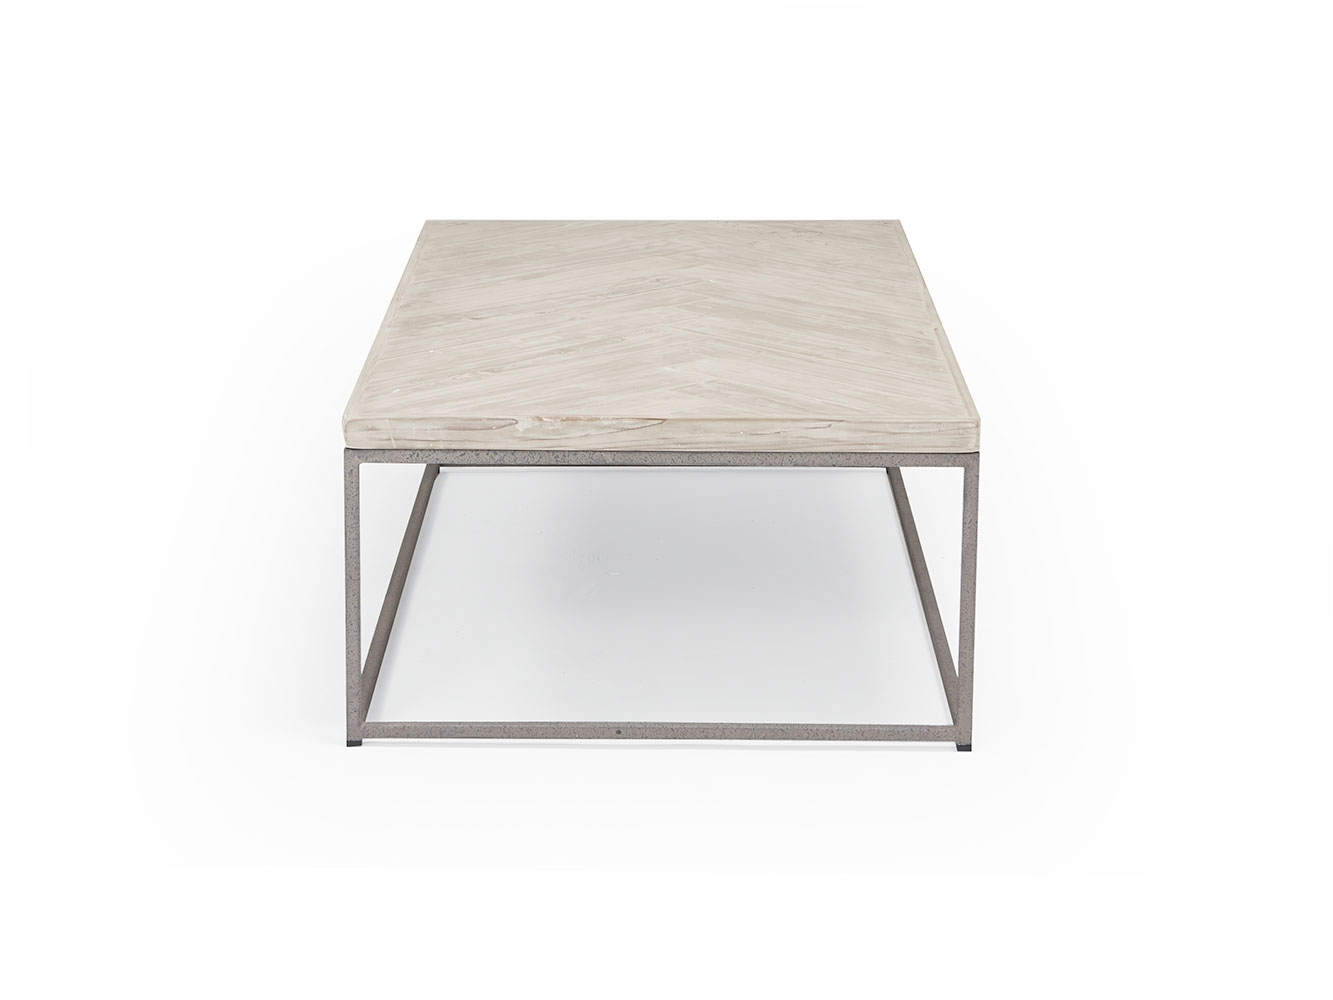 Parker Coffee Table | Parquet Coffee Table | Loaf inside Parquet Coffee Tables (Image 23 of 30)